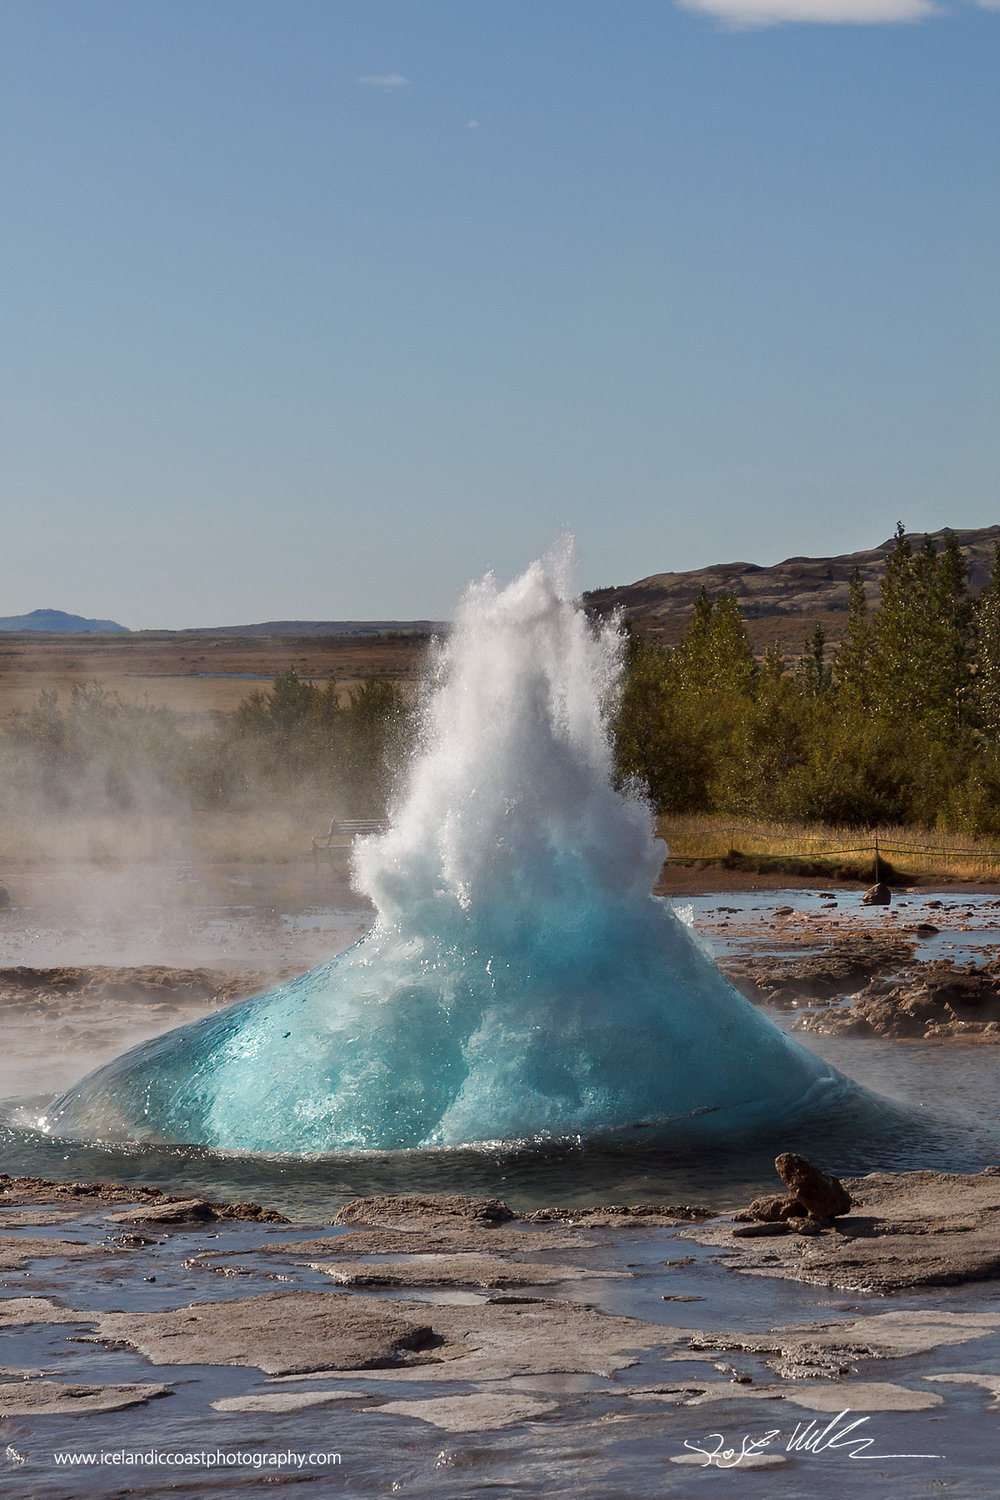 10-Geysir-bubble-burst-vertical.jpg